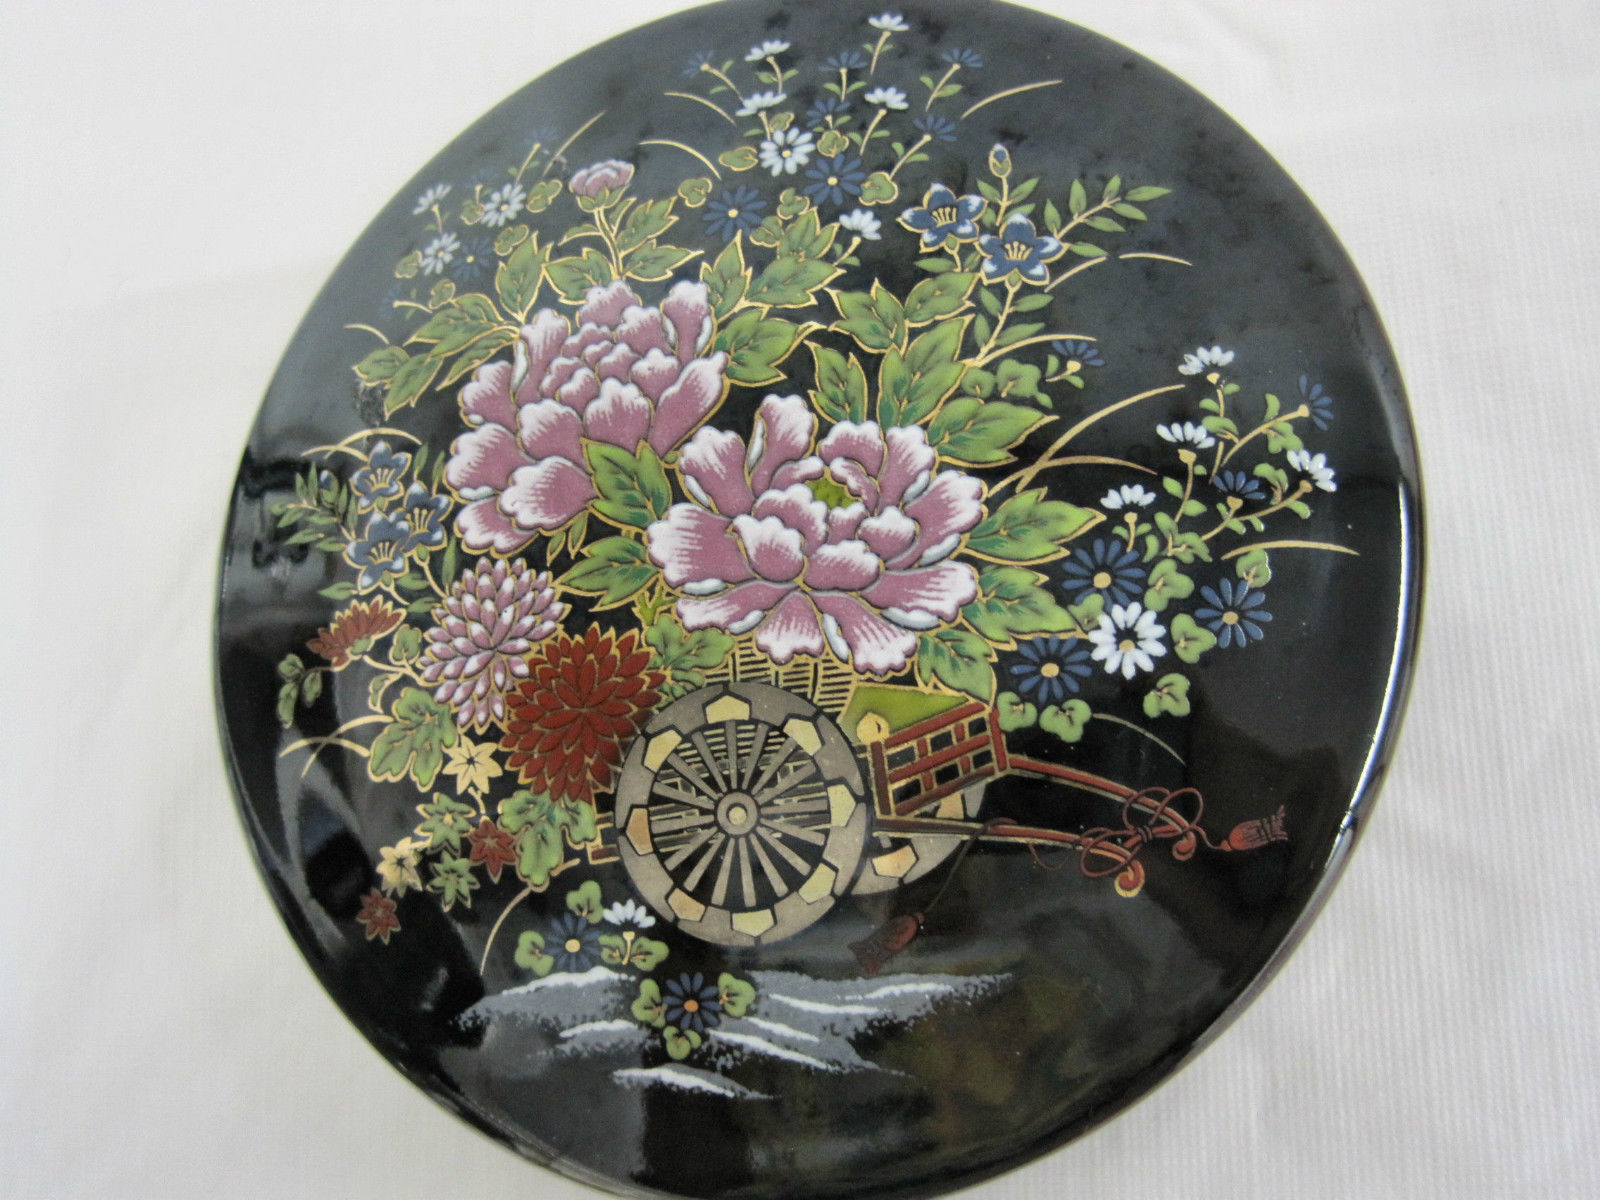 Antique Japanese Imperial Kutani Round Covered Trinket Box Dish Container image 2